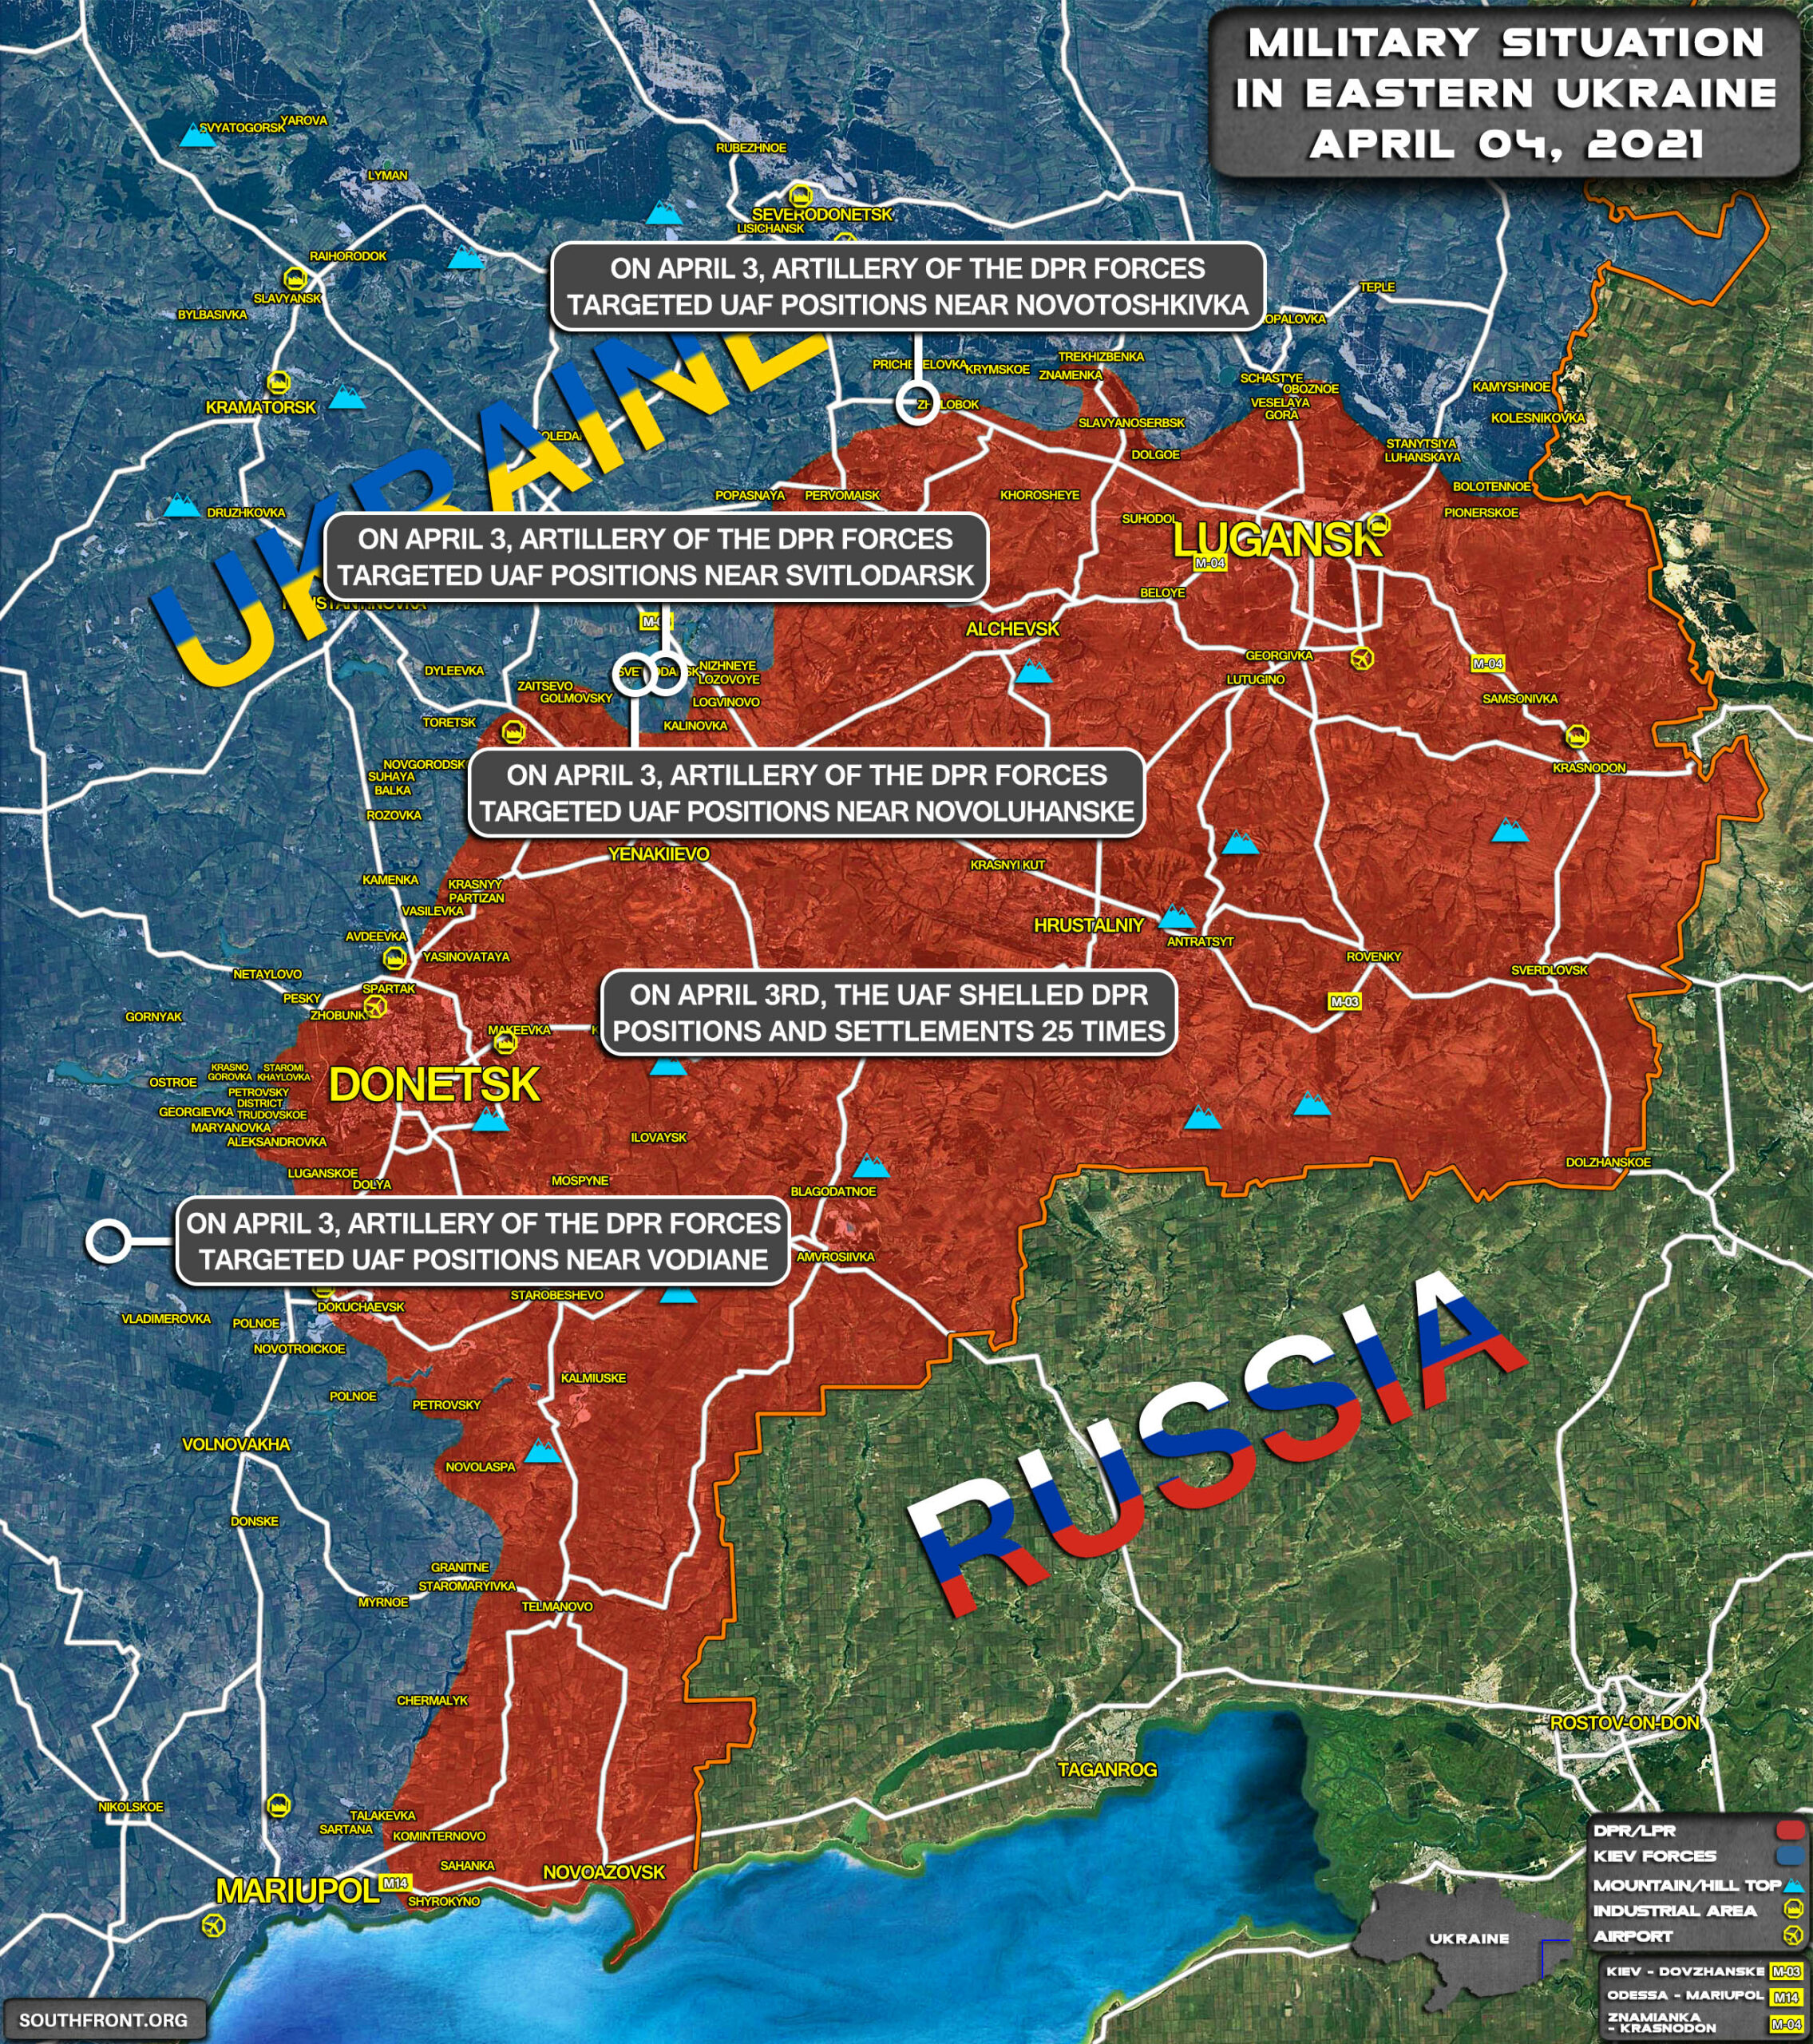 Military Situation In Eastern Ukraine On April 4, 2021 (Map Update)